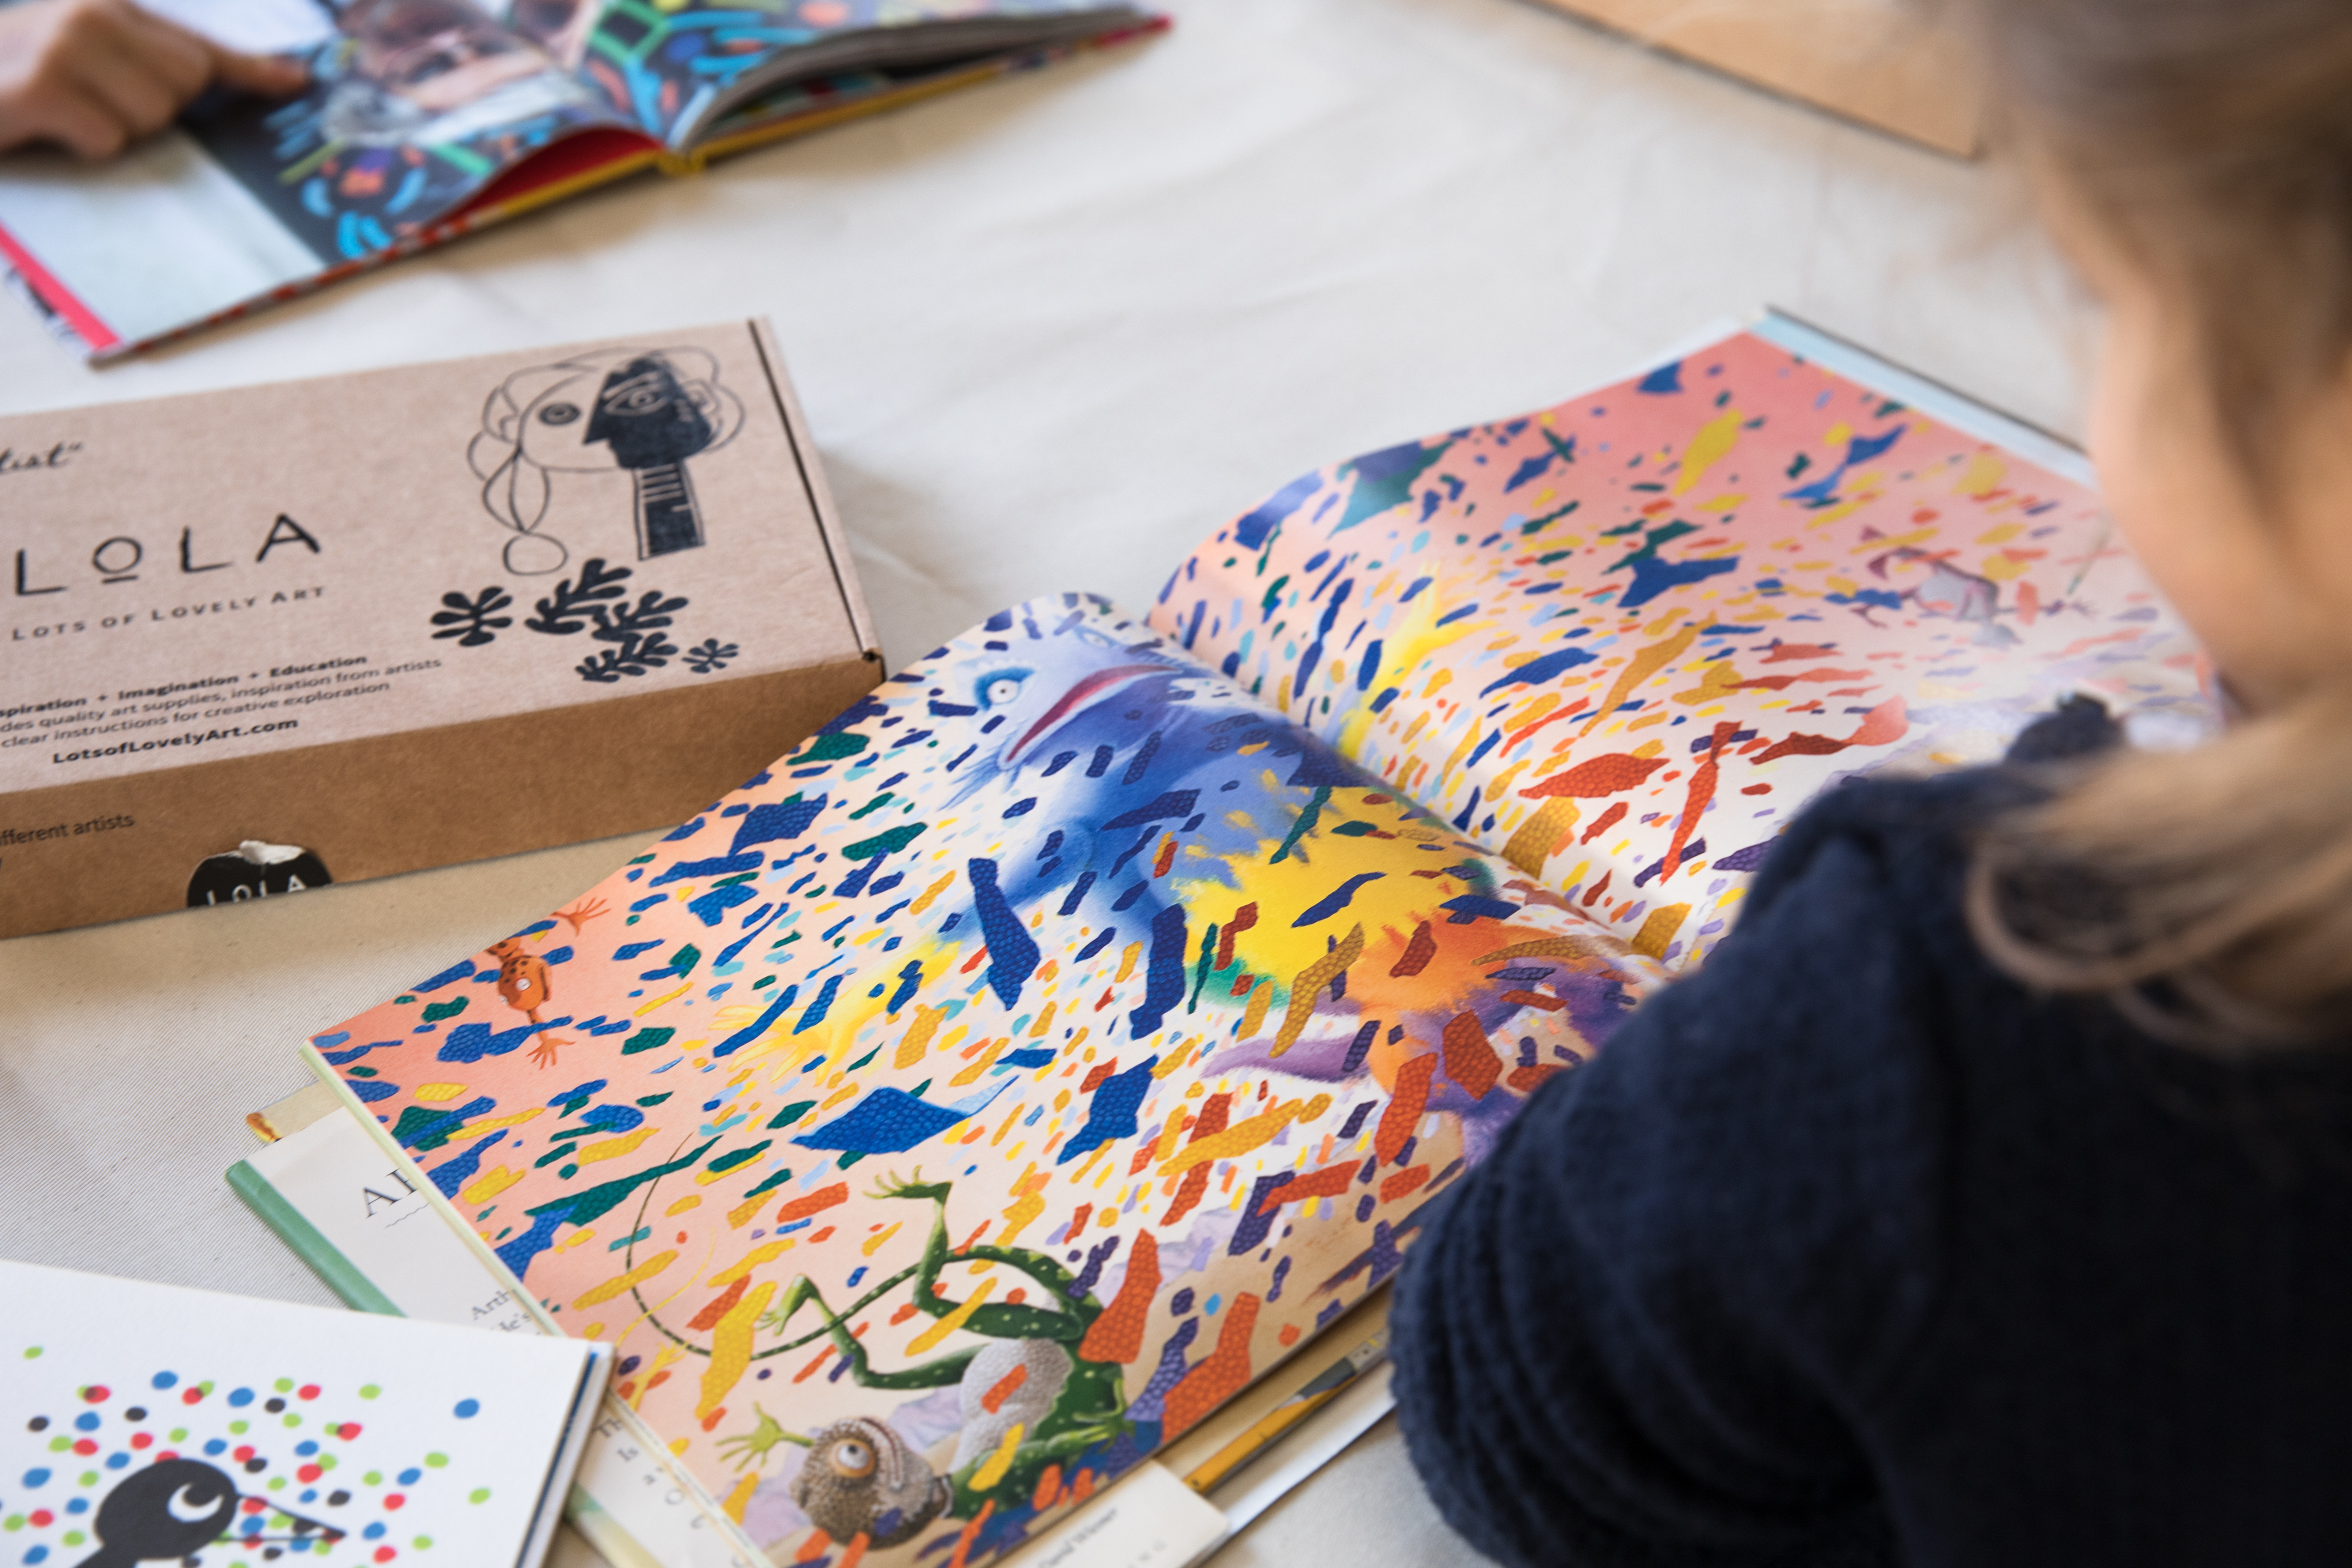 Lots of Lovely Art Is Making Art Accessible, Easy and Fun For Children (And Their Parents)